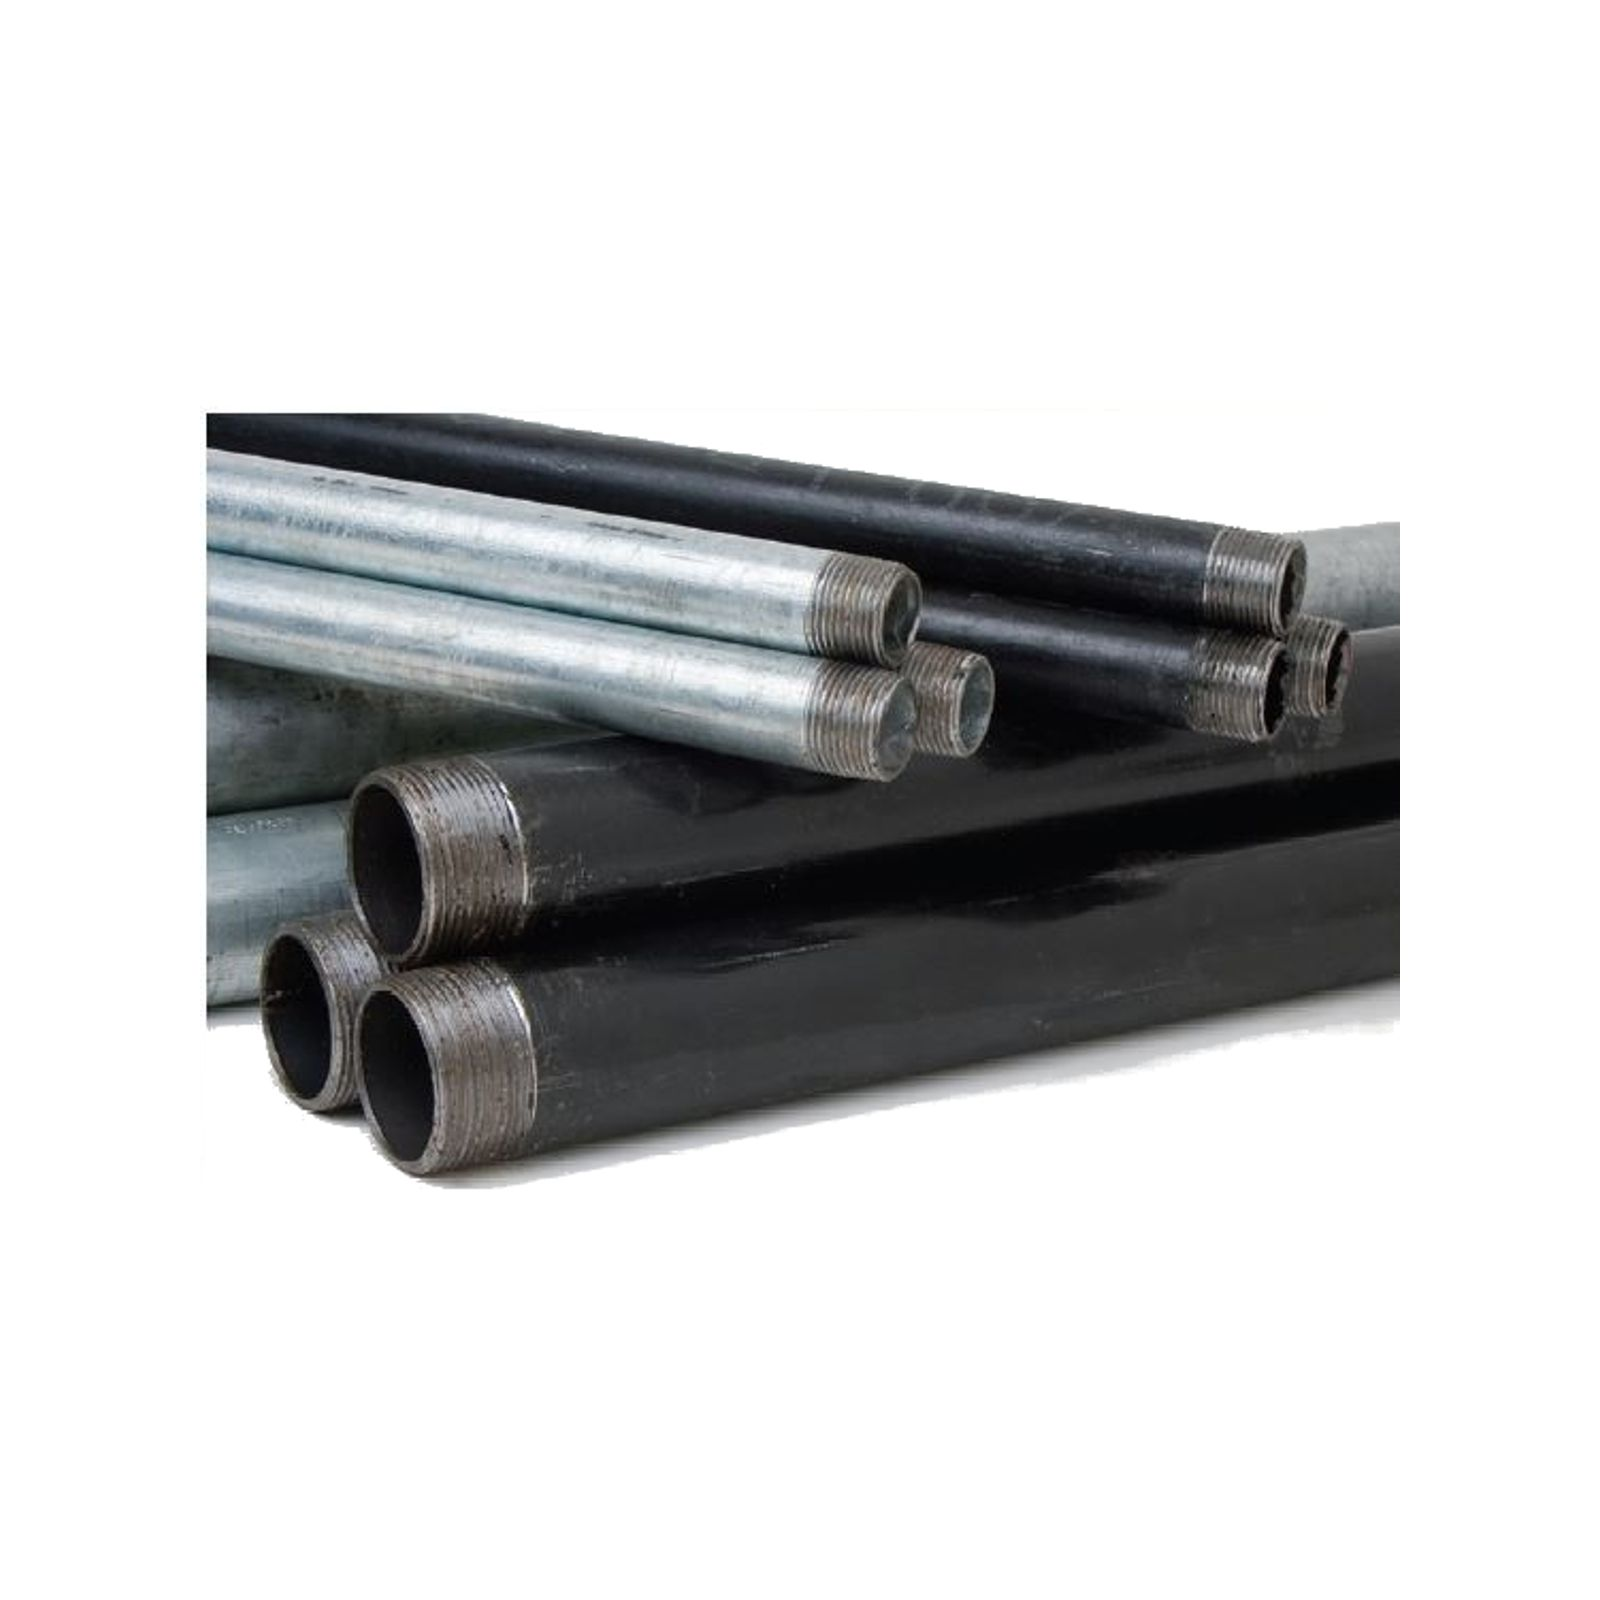 "Southland 583-1200HC - 1/2"" x 10' Black Threaded Steel Pipe"